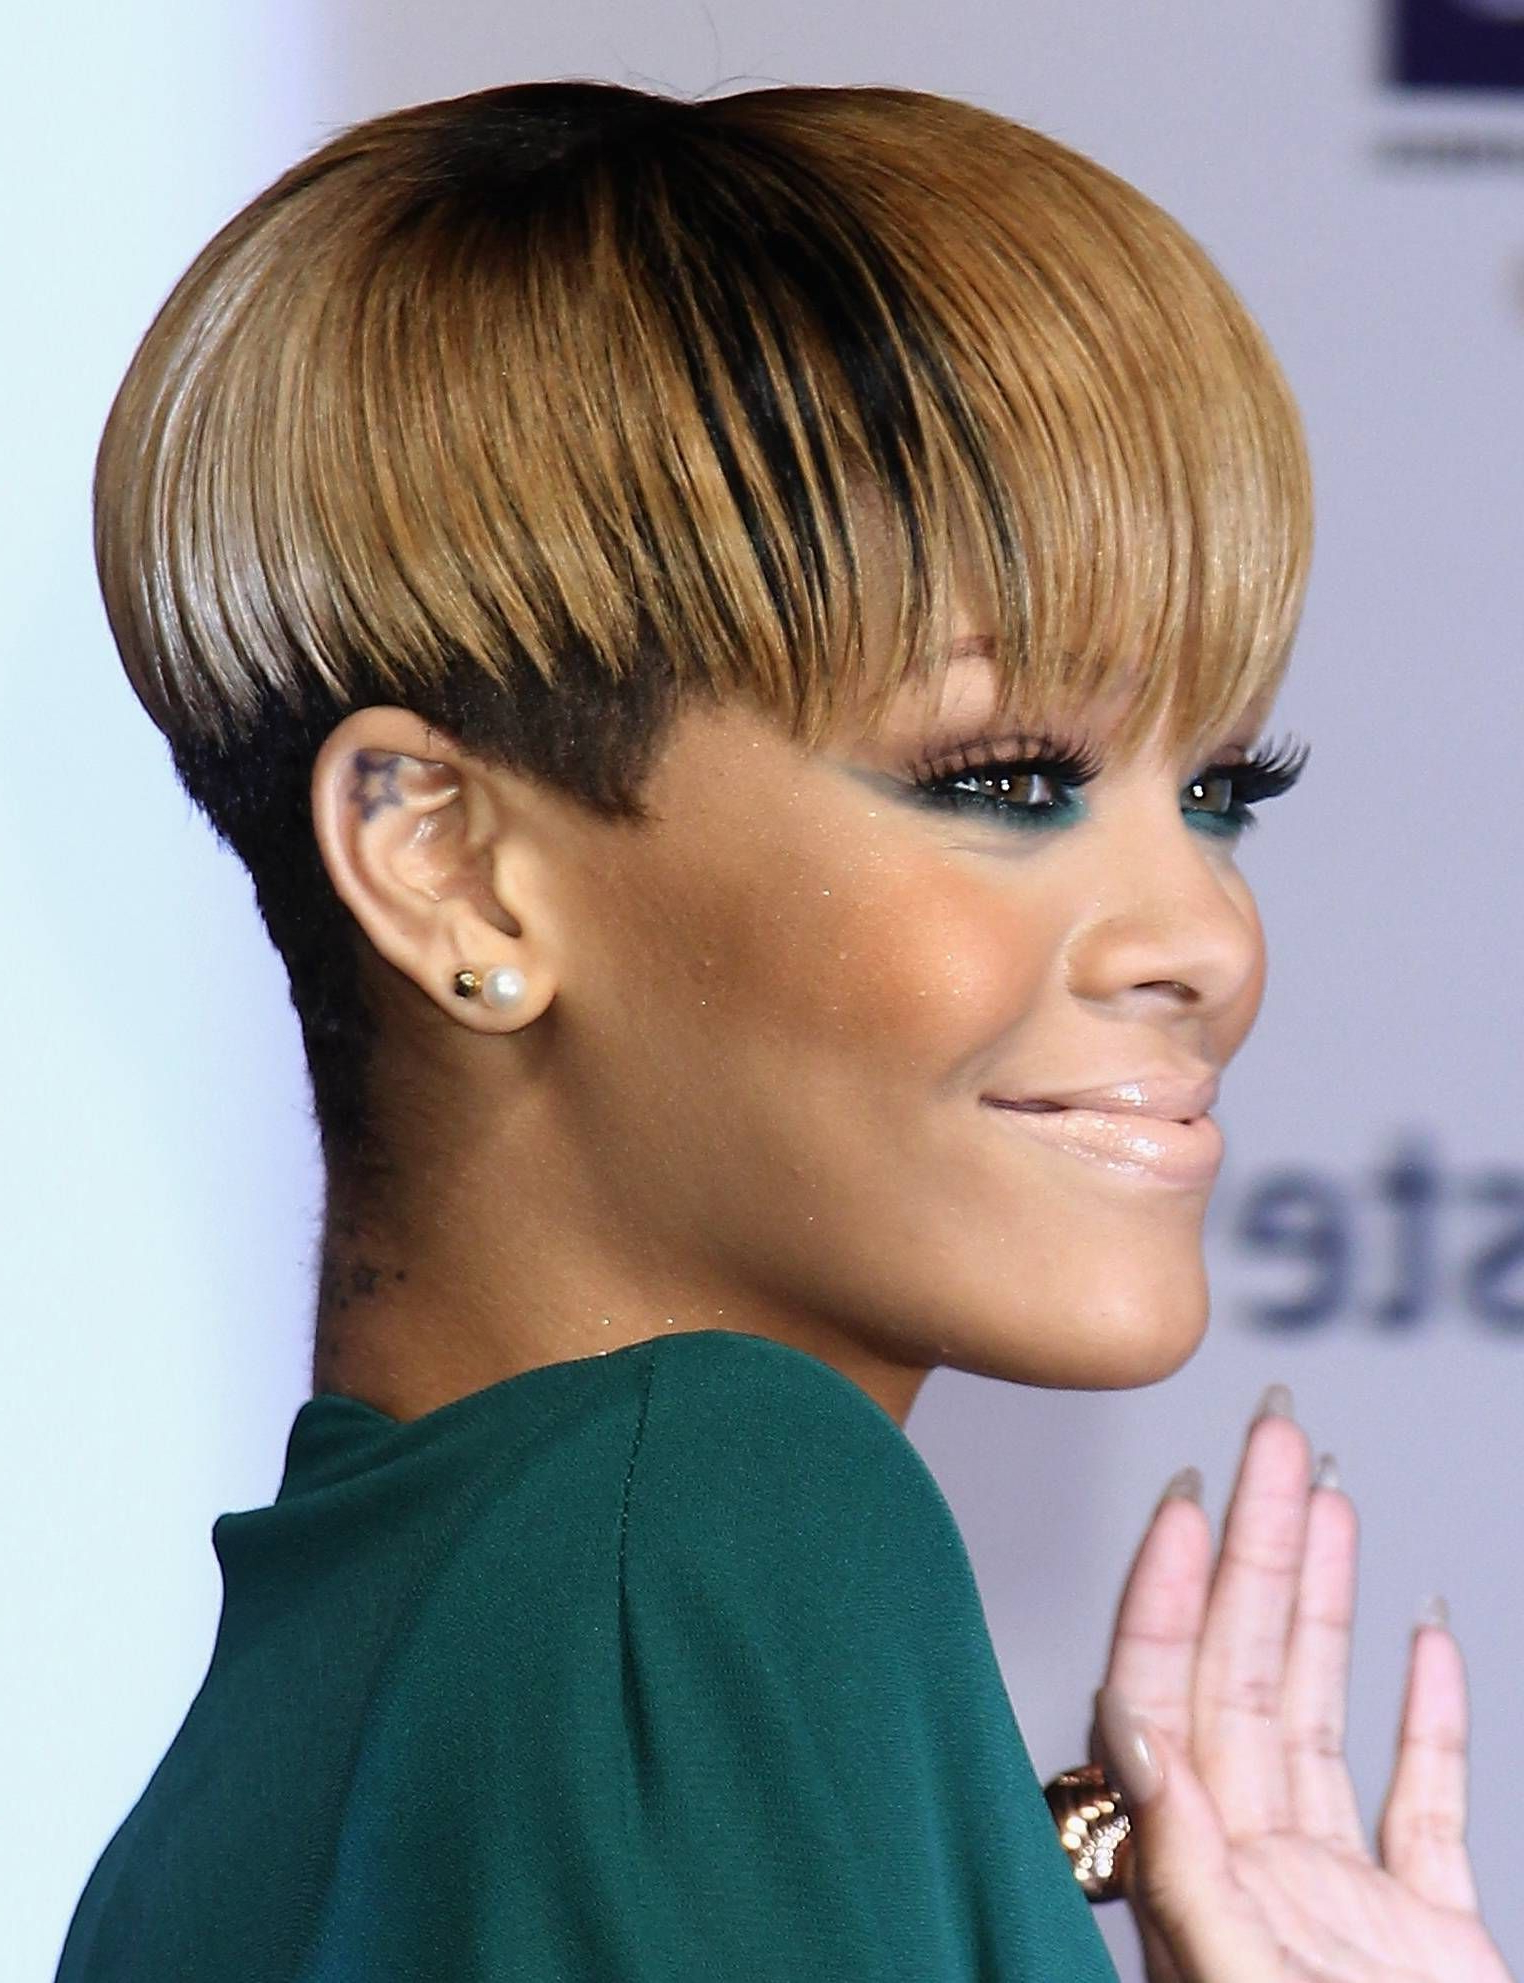 Short Haircuts: The Best Edgy Styles For Black Women In 2018 Inside Black Short Hairstyles (View 17 of 25)